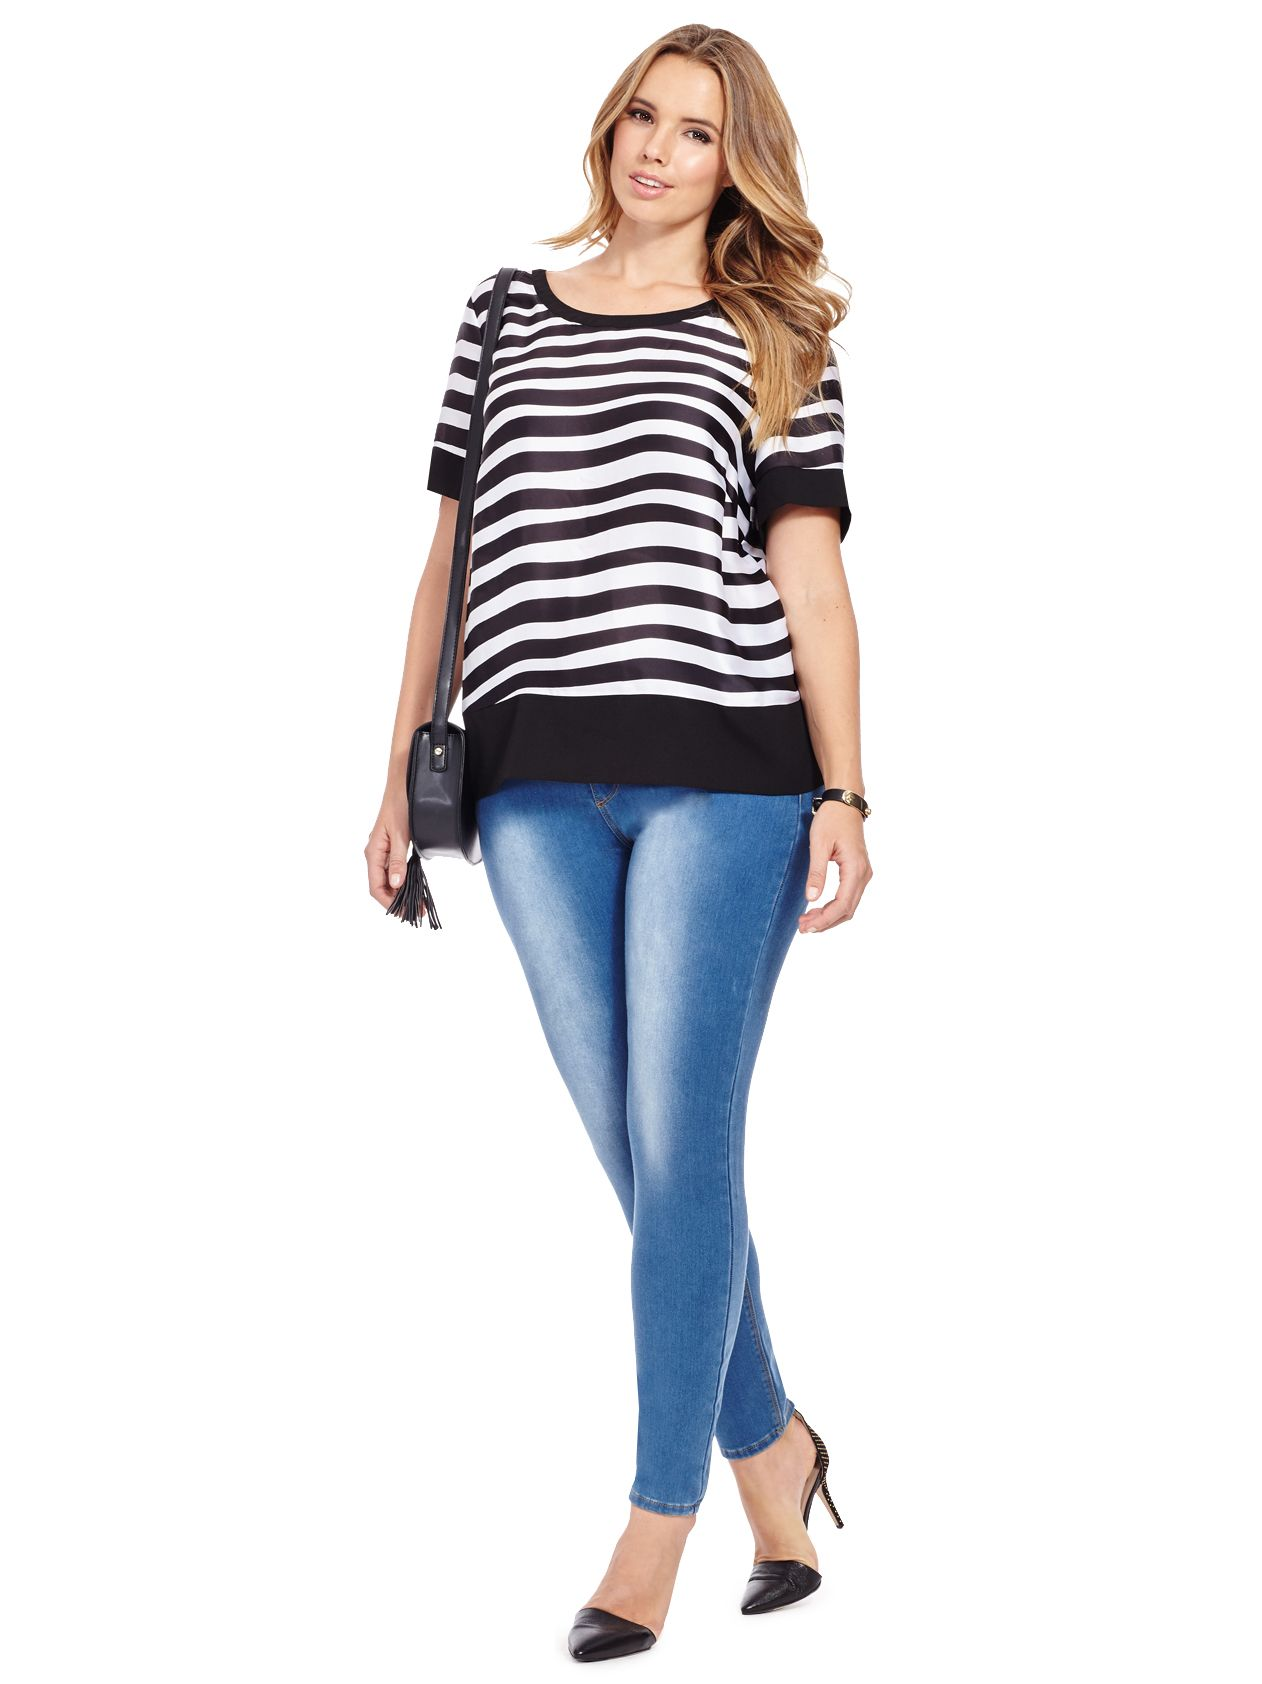 Painted Stripe Blouse by @modamixfashion  Available in sizes 0X-3X